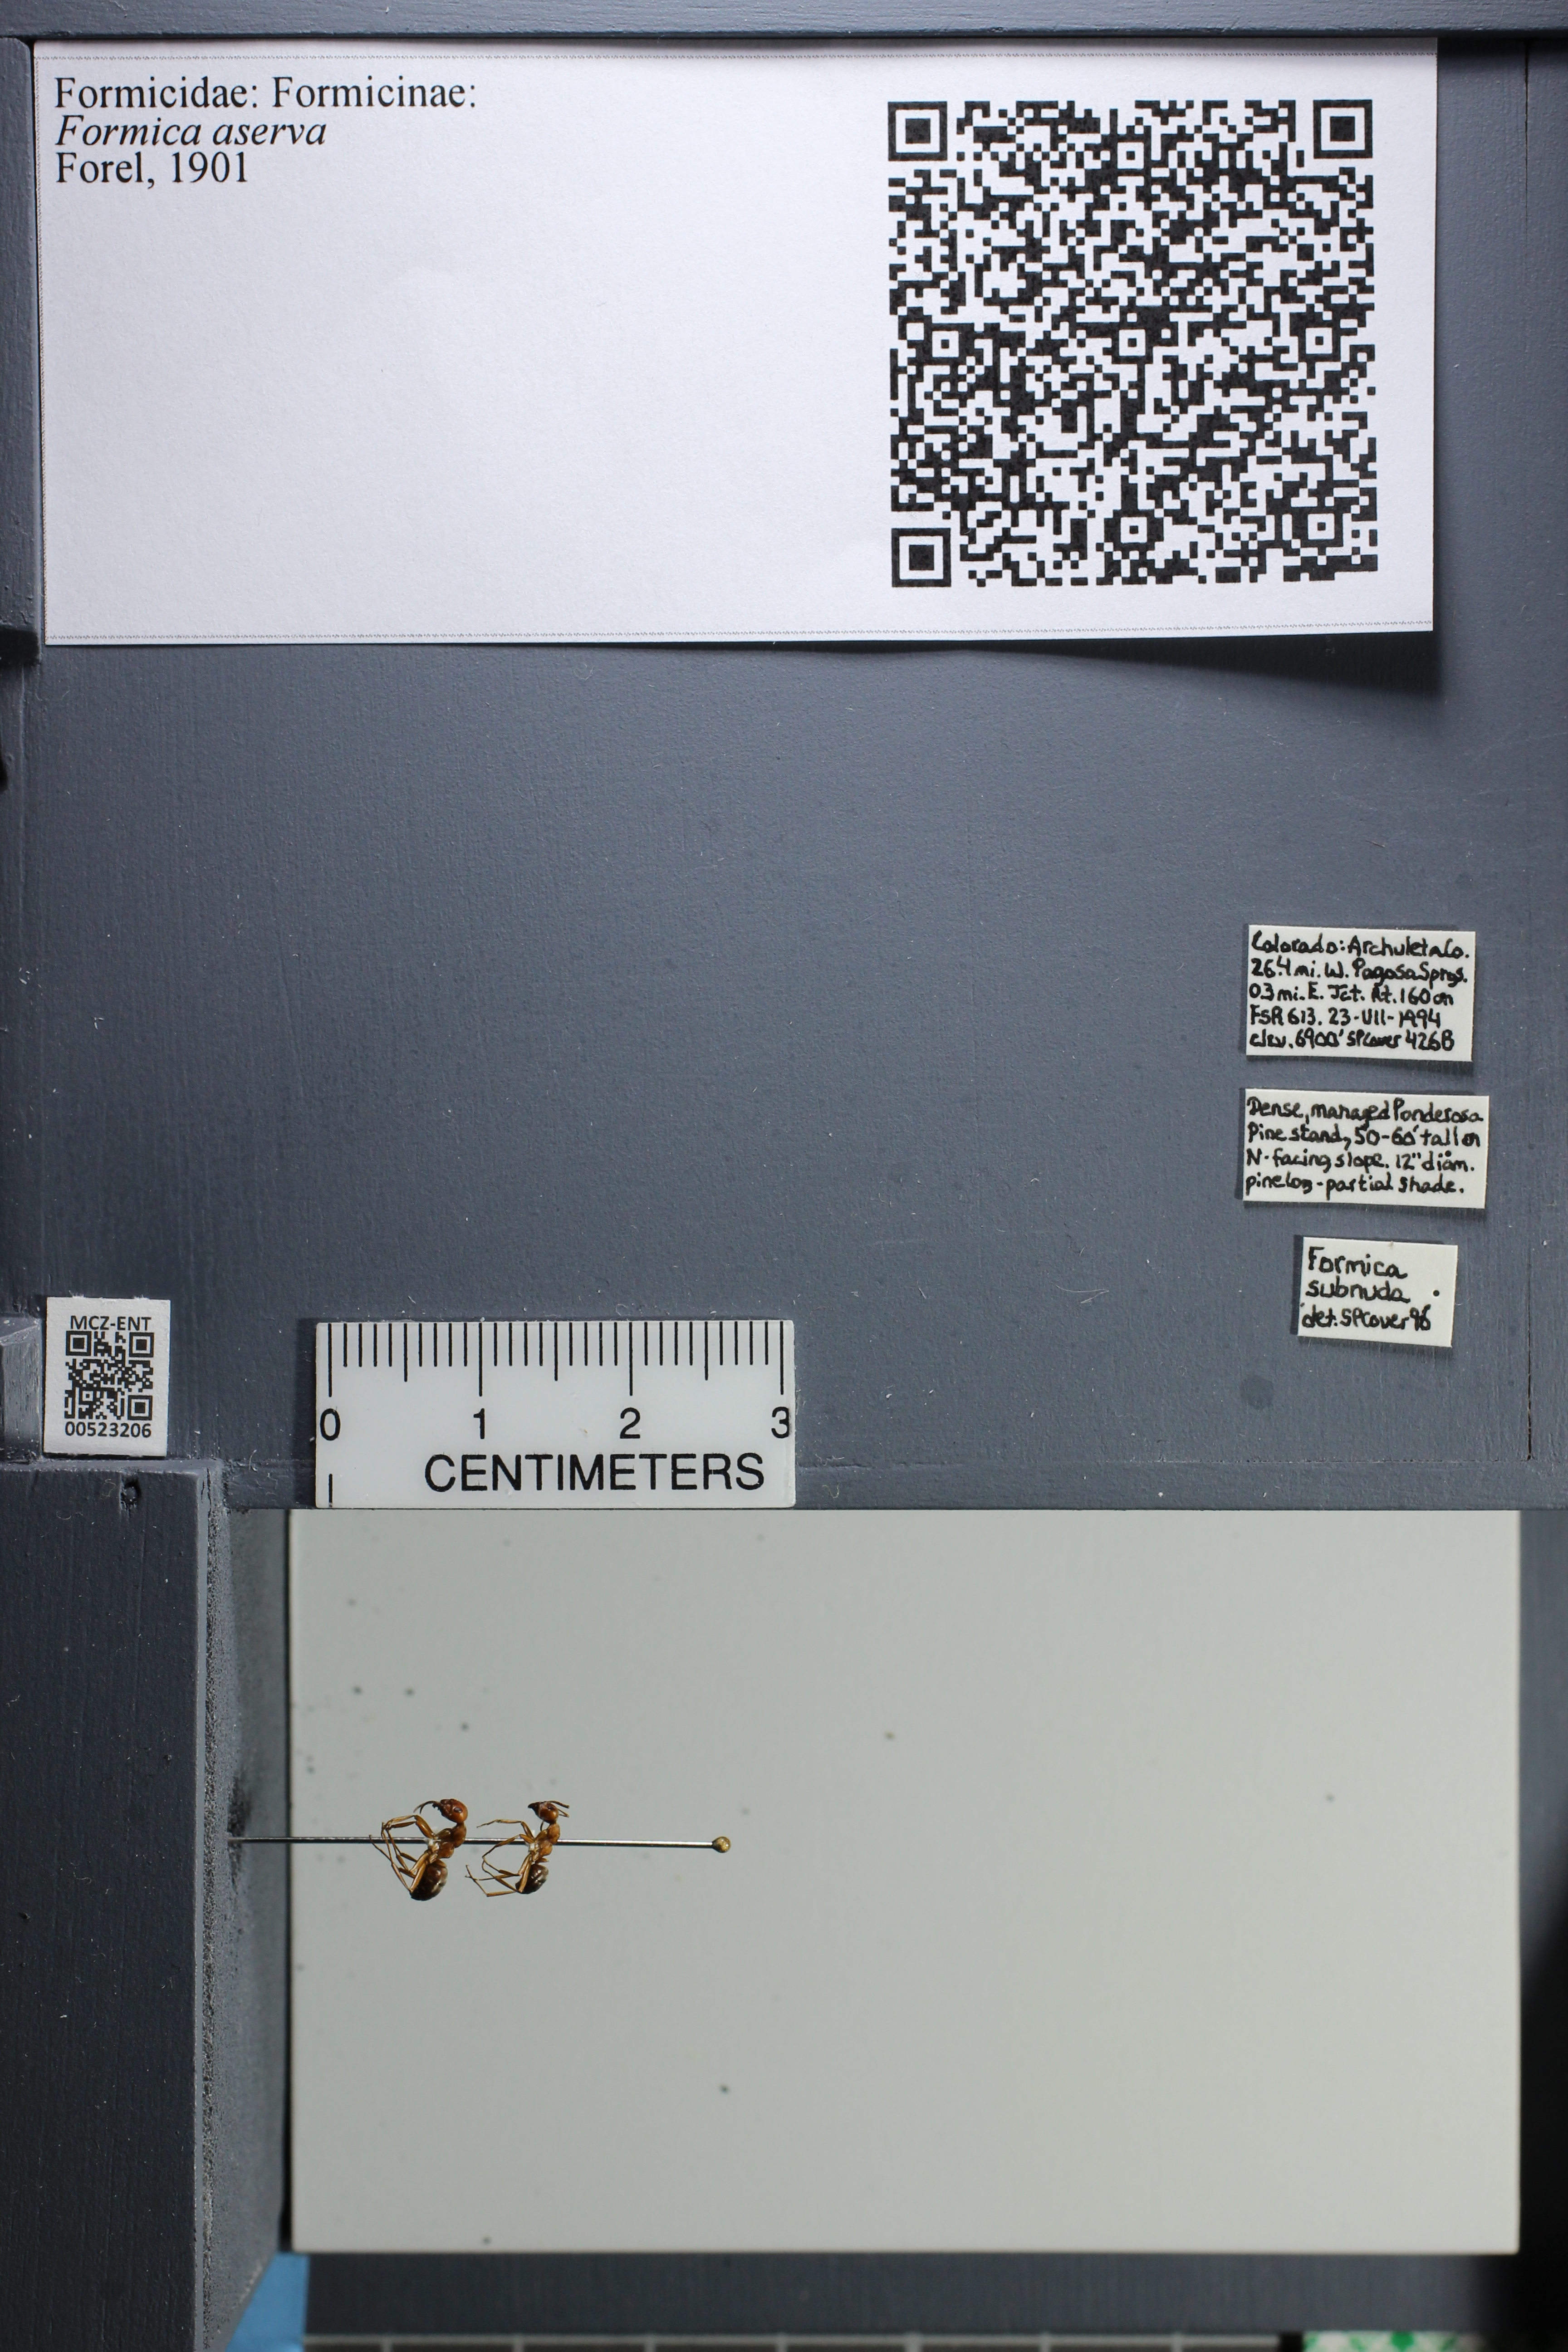 Media of type image, shows cataloged_item. MCZ:Ent:523206 Identified as Formica aserva.